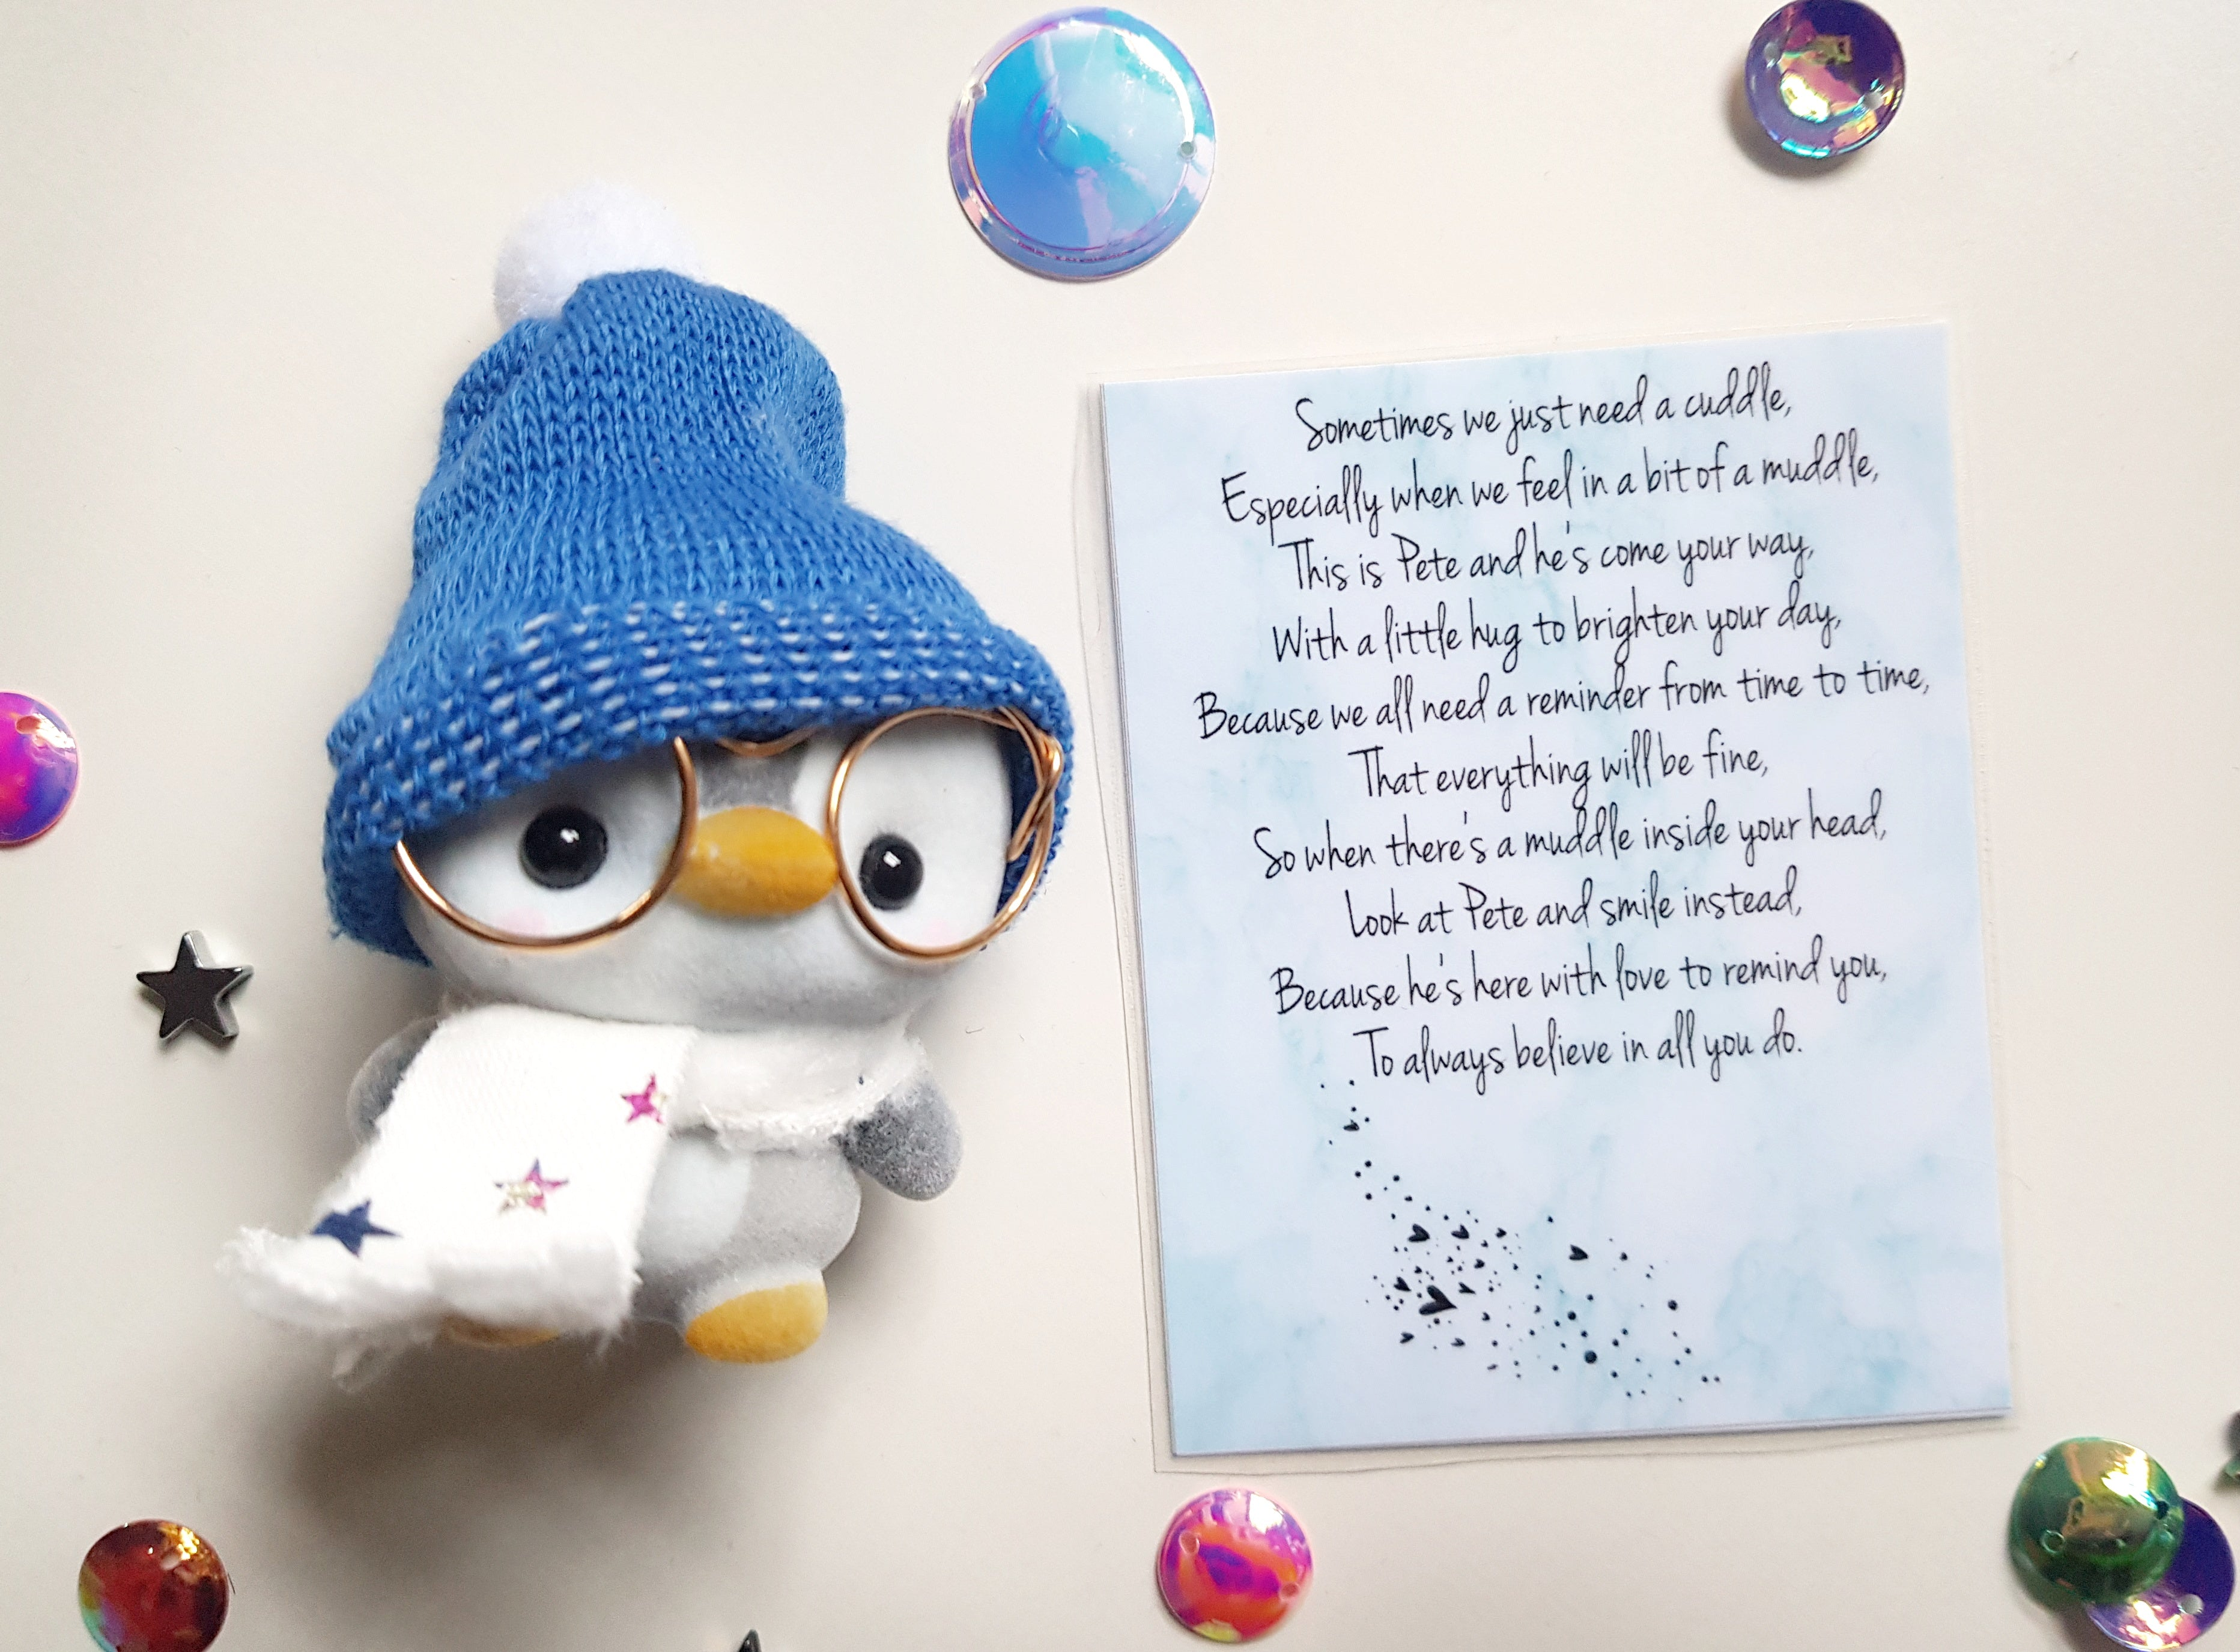 Pete The Penguin - Believe In You! 💙 - Little Happy Thoughts